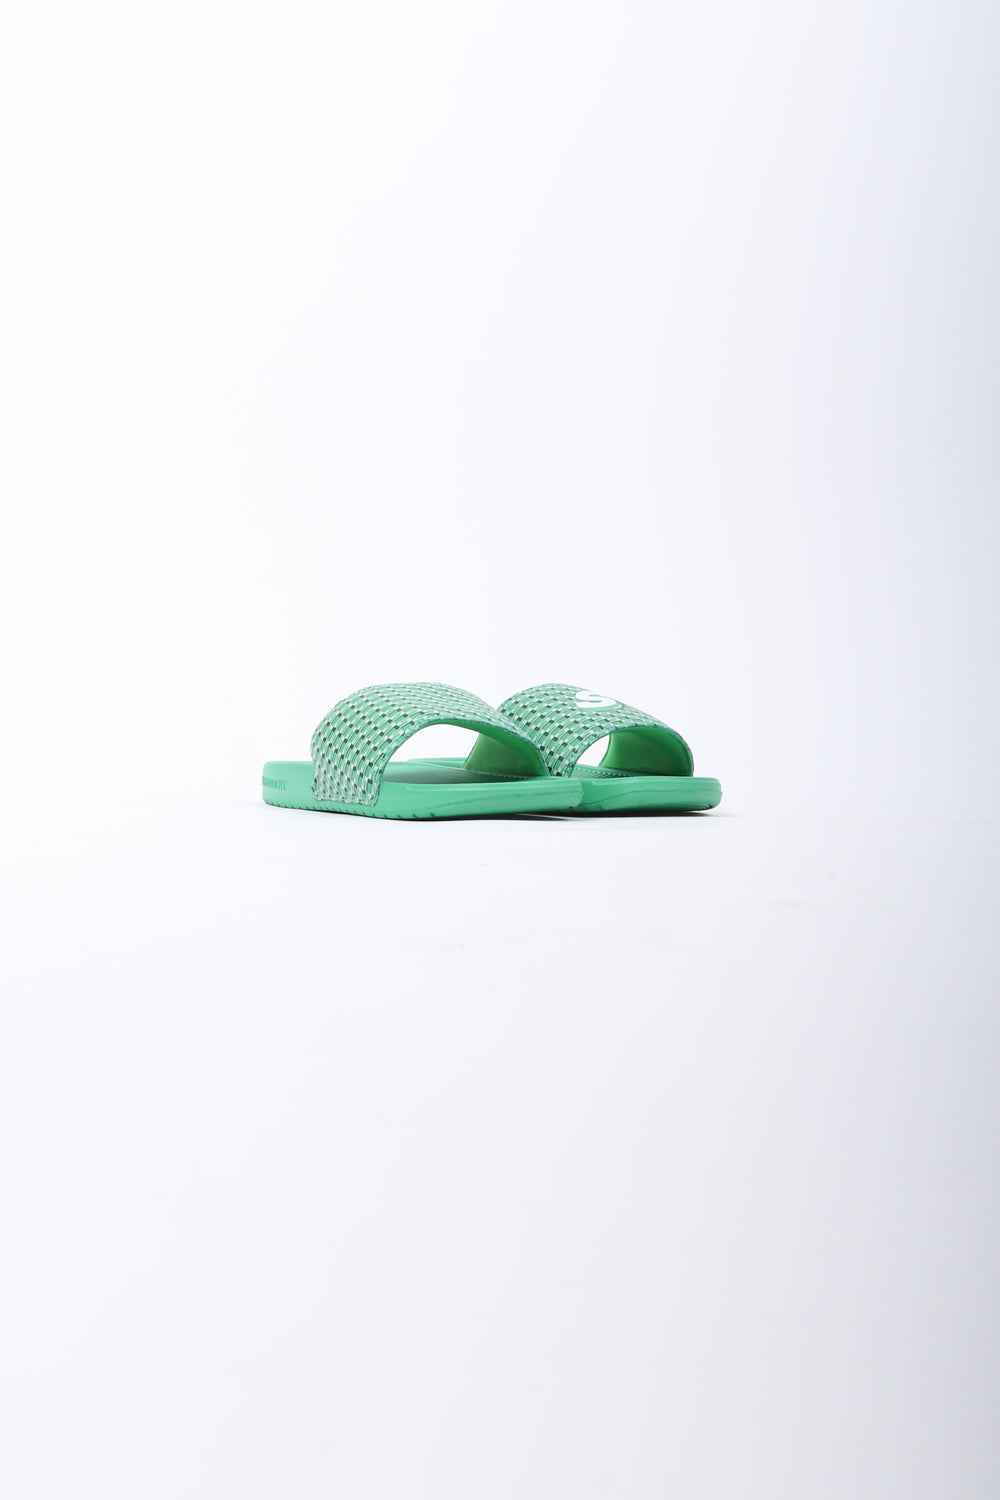 SandalBoyz Chroma Color Sandals In Green